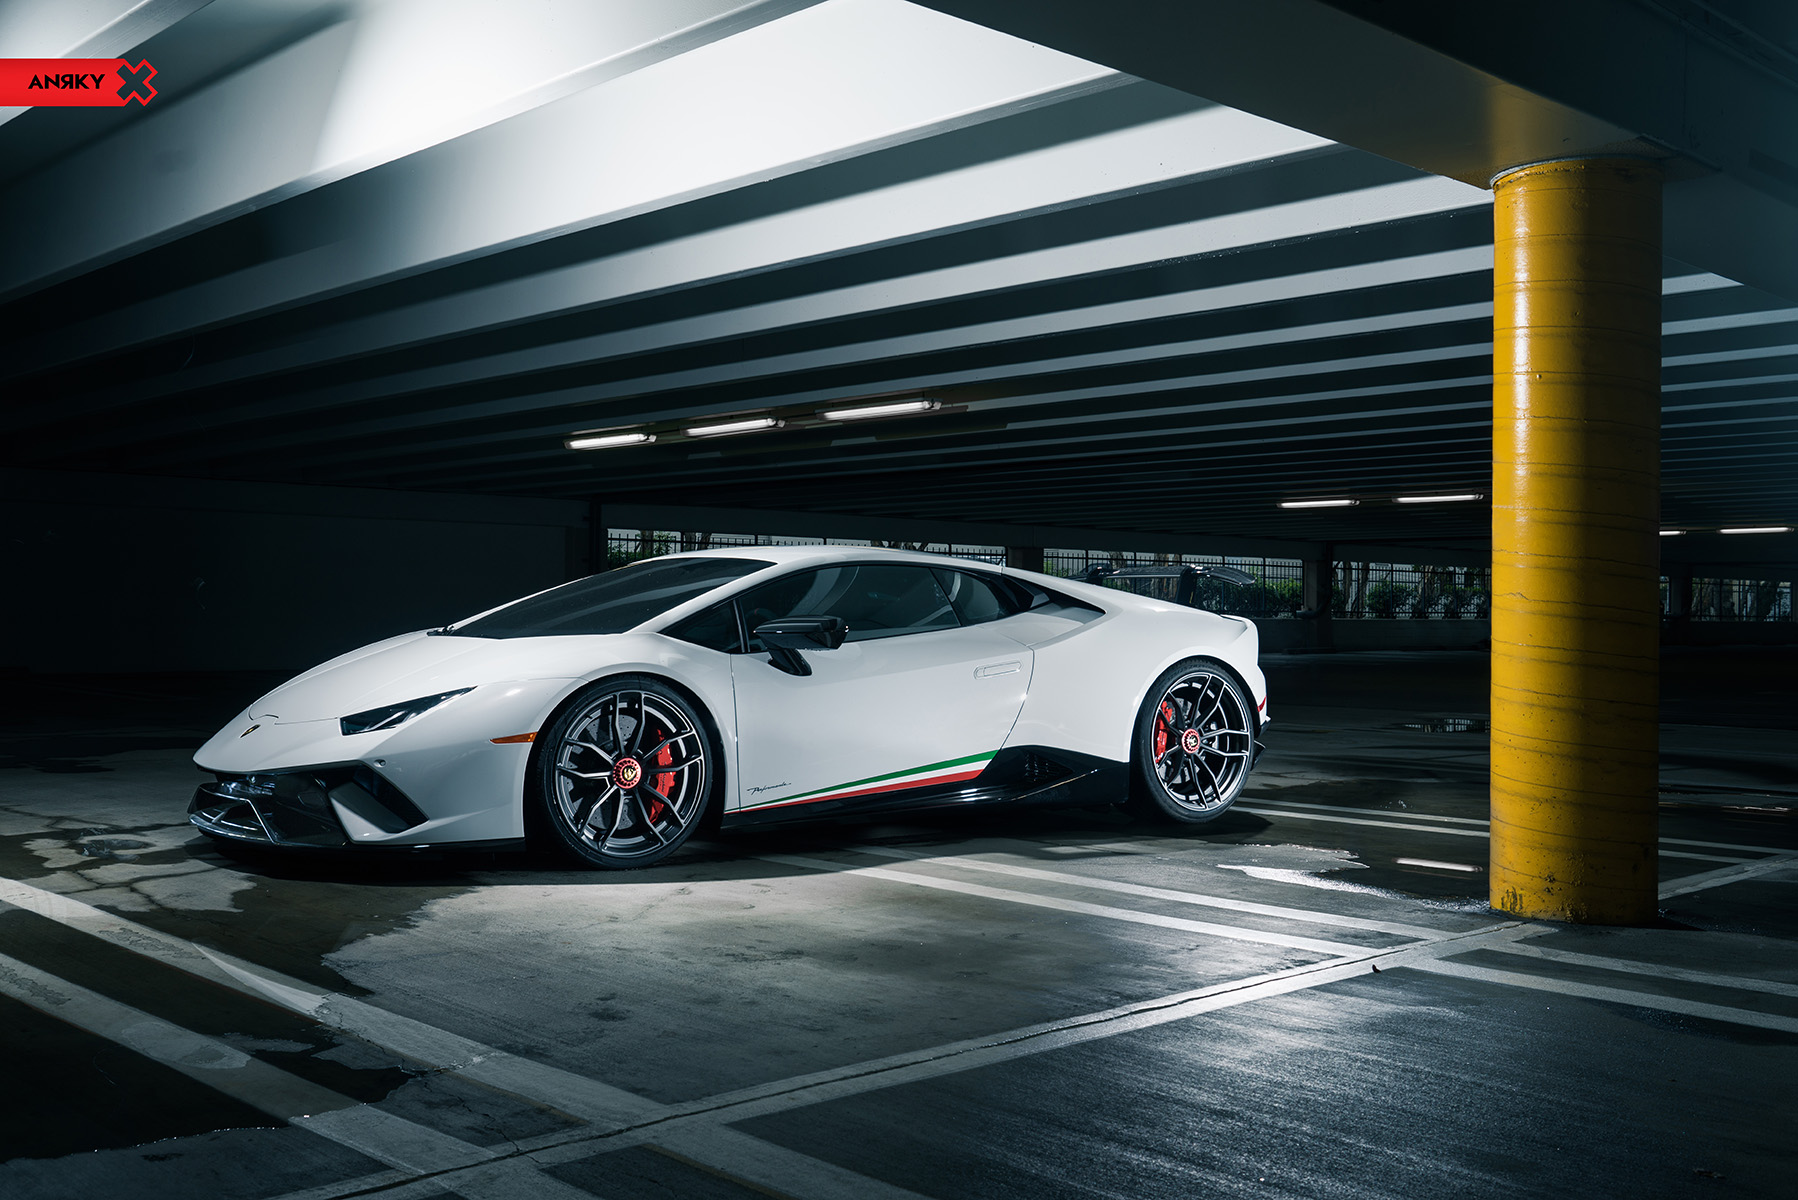 Lamborghini Huracan Performante – Anrky Wheels